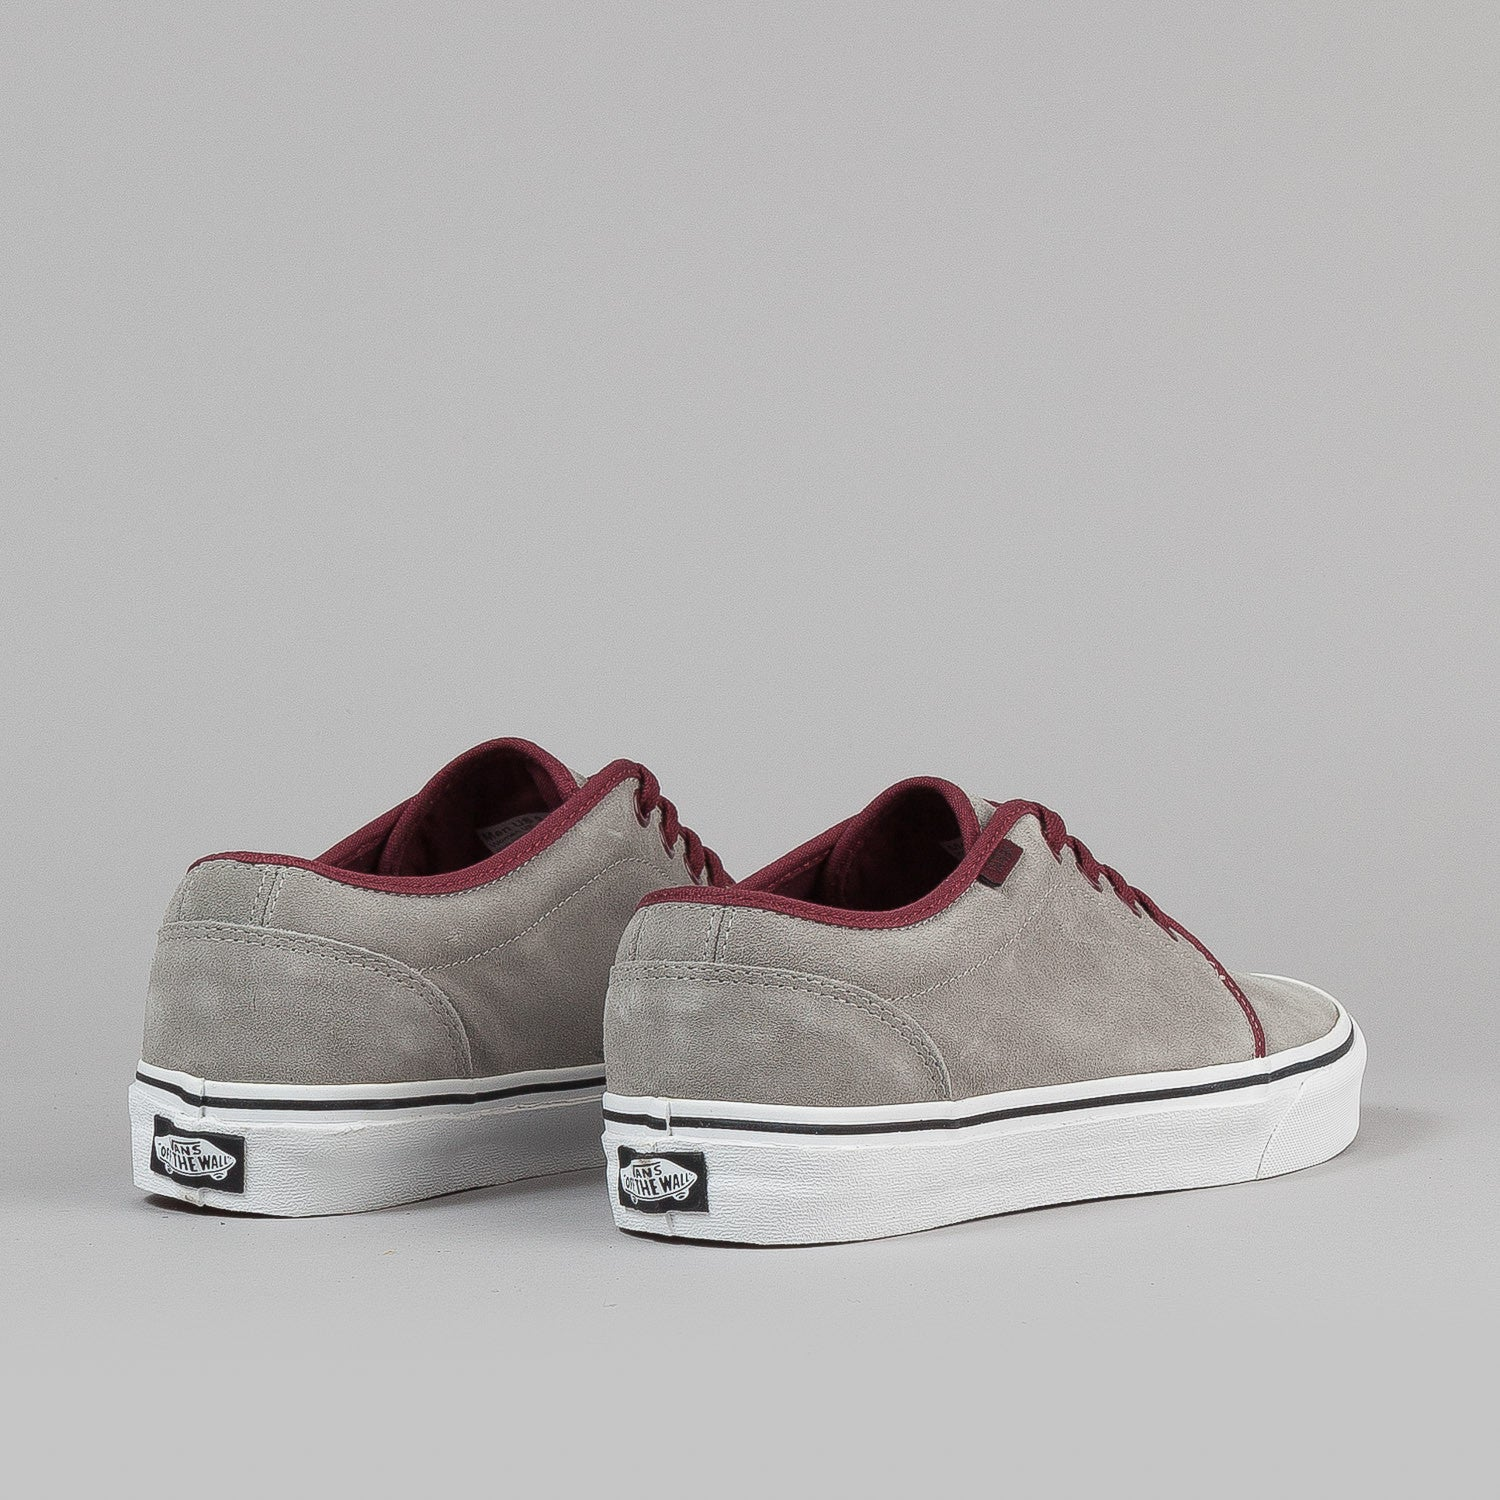 Vans 106 Vulc Shoes - (Suede) Flint Grey / Choc Truffle